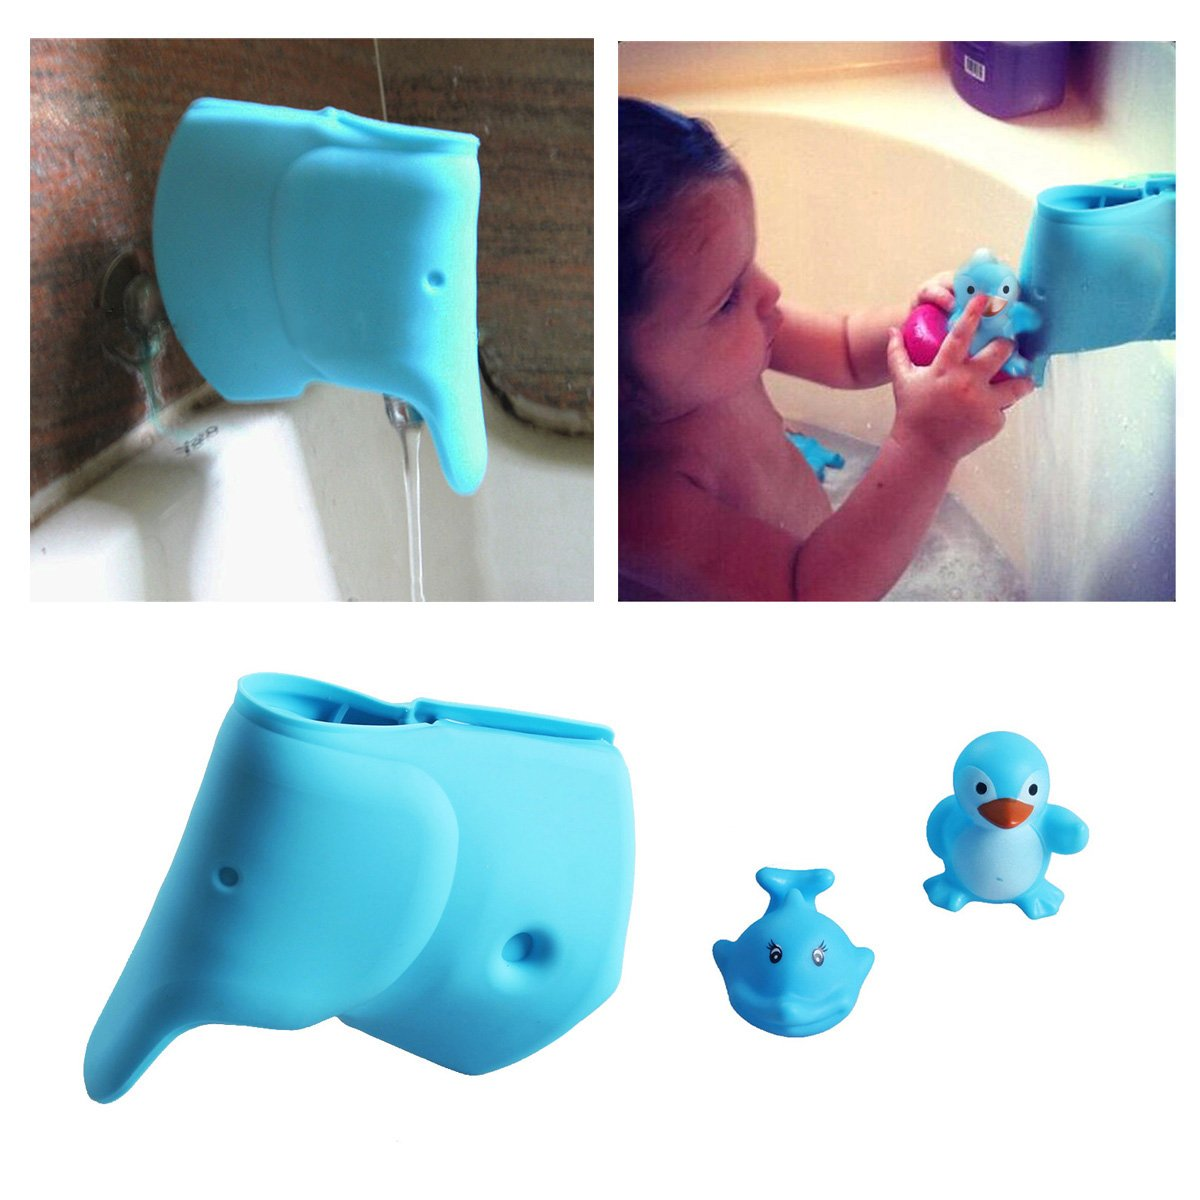 Bath Spout Cover - Faucet Cover Baby - Tub Spout Cover - Bathtub Faucet Cover for Kids - Tub Faucet Protector for Baby -Silicone Spout Cover Blue Elephant - Kids bathroom accessories : Baby